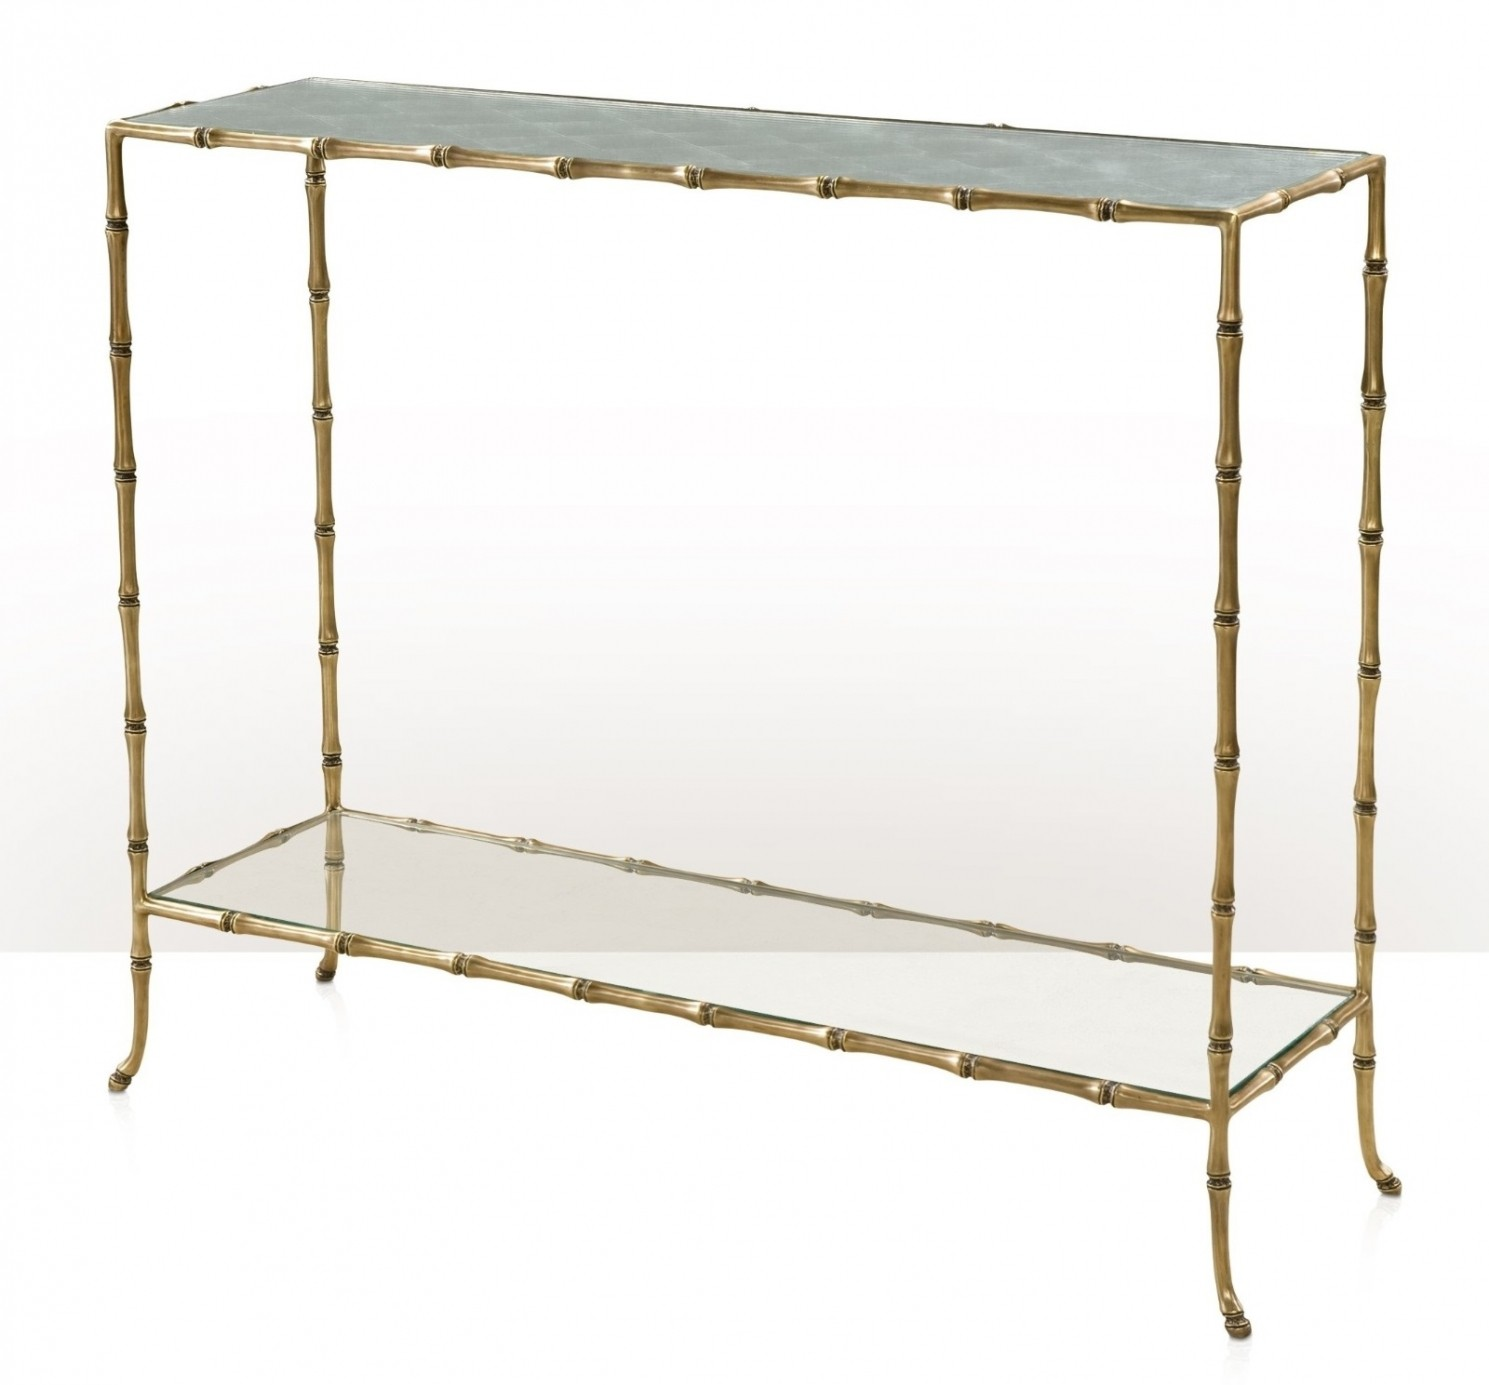 brass console table. A Bamboo Cast Brass Console Table C